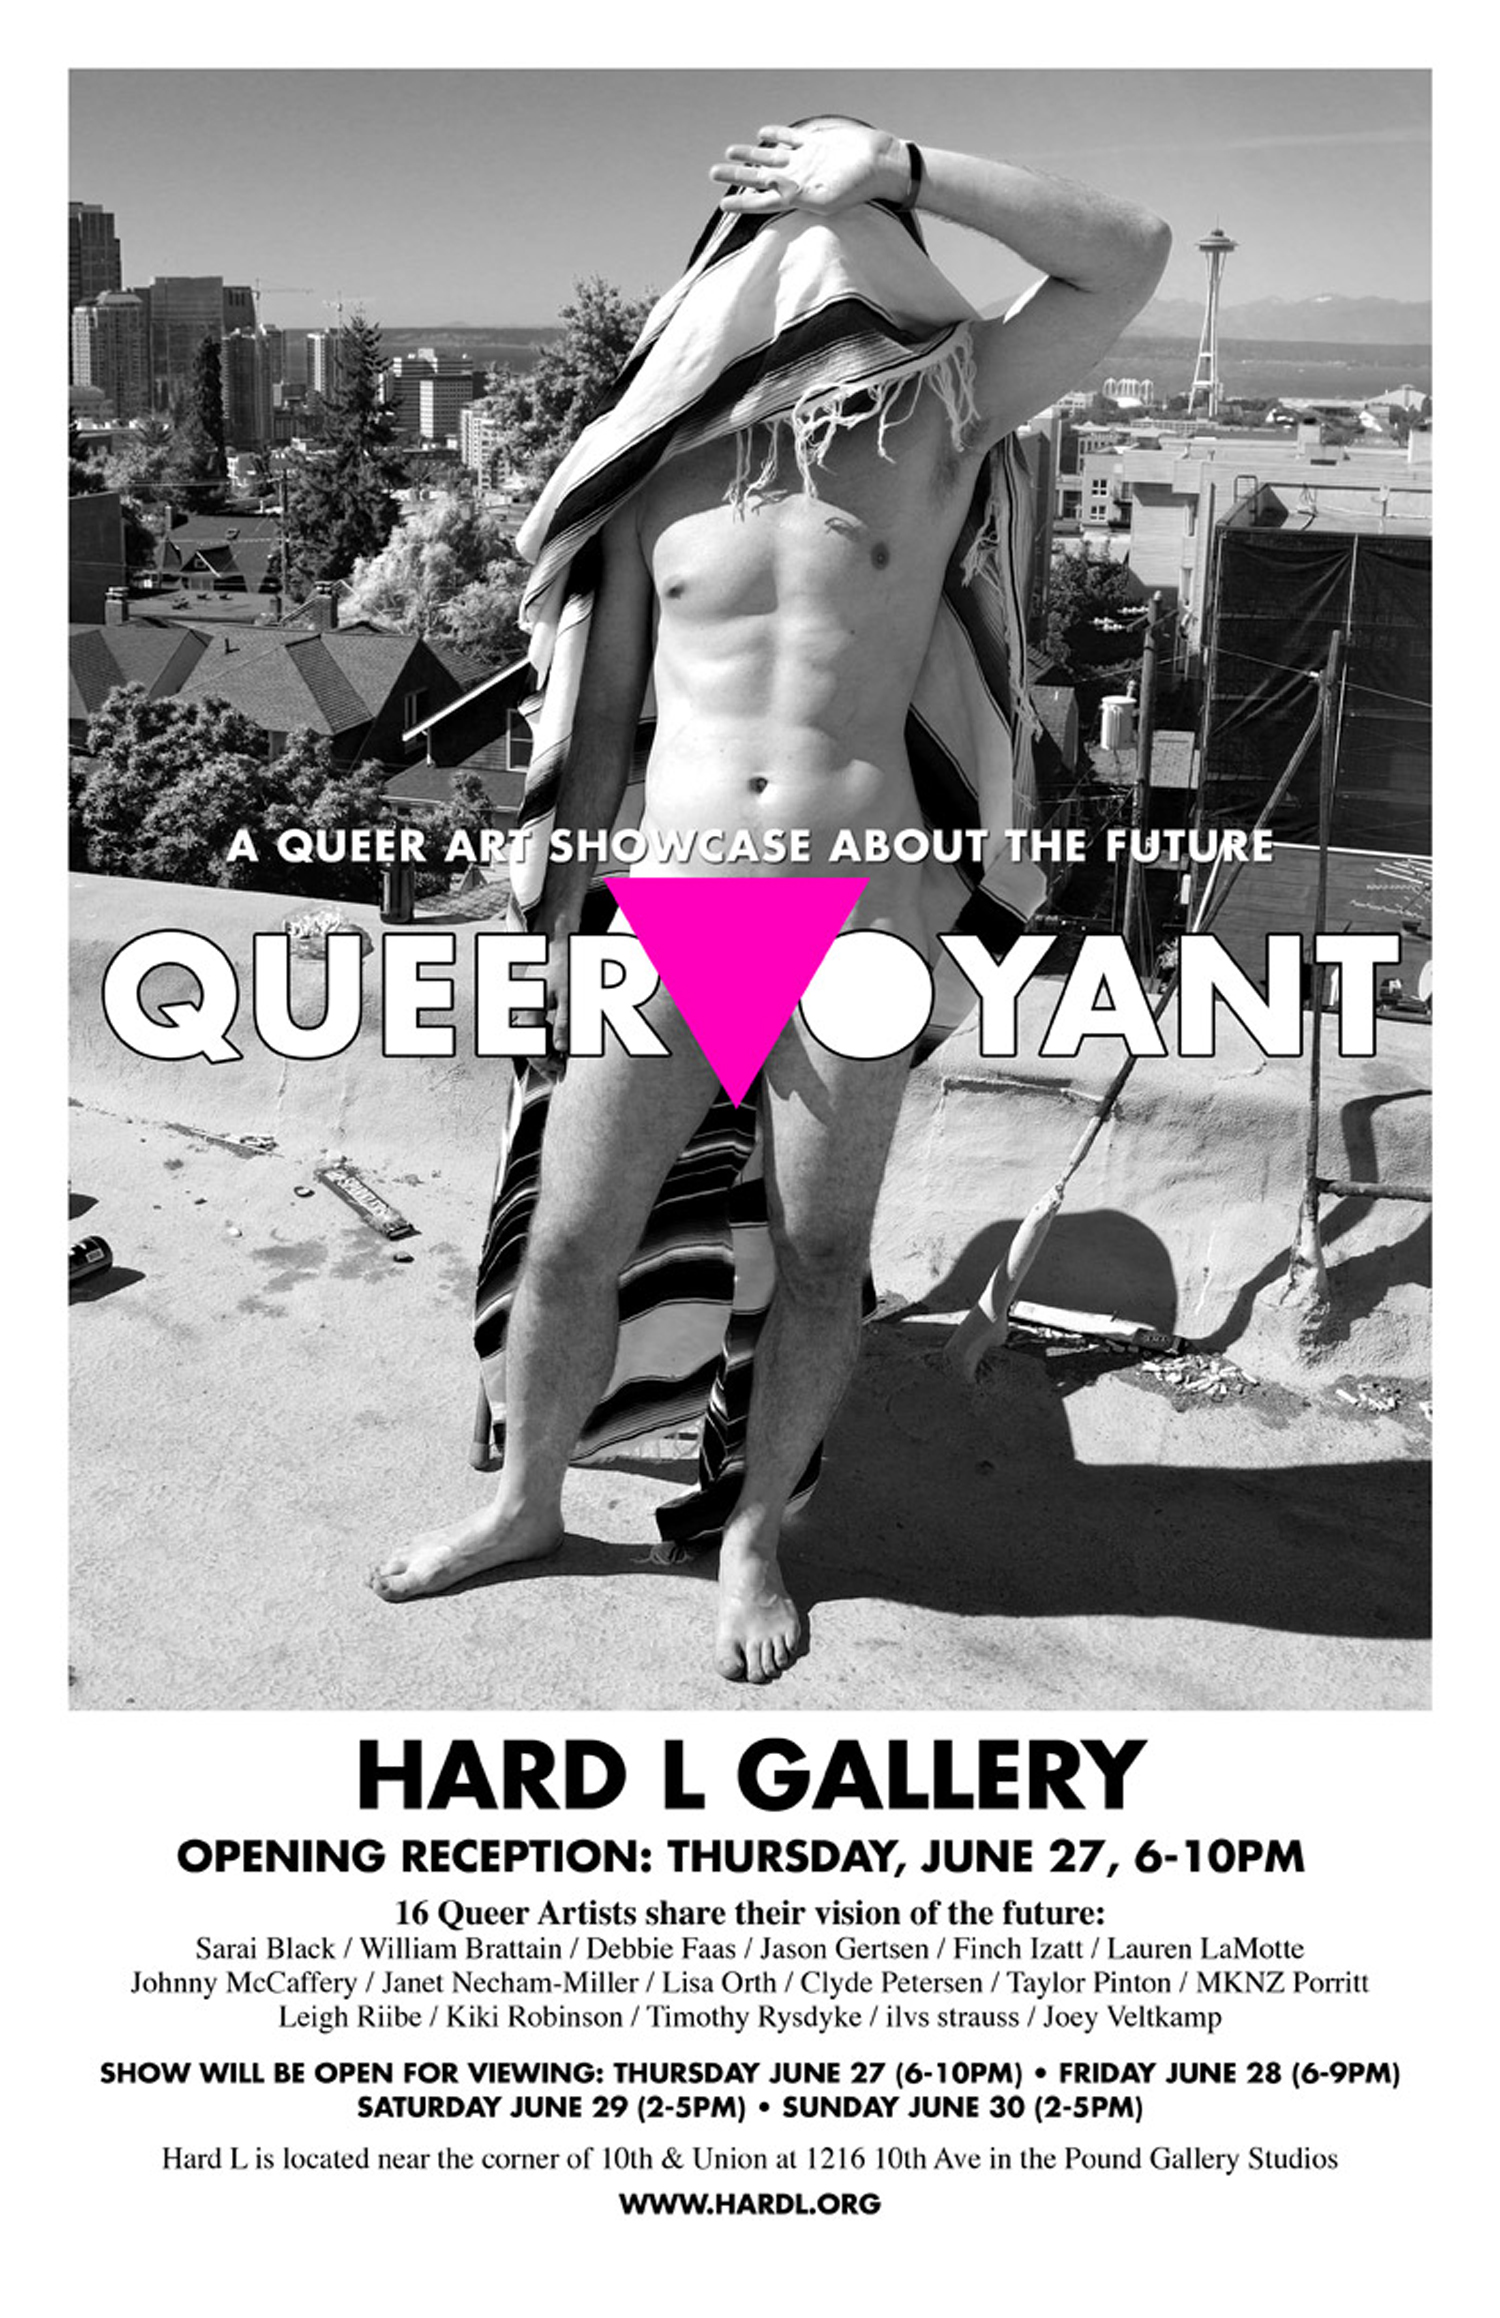 Queervoyant: A Queer Art Showcase About the Future